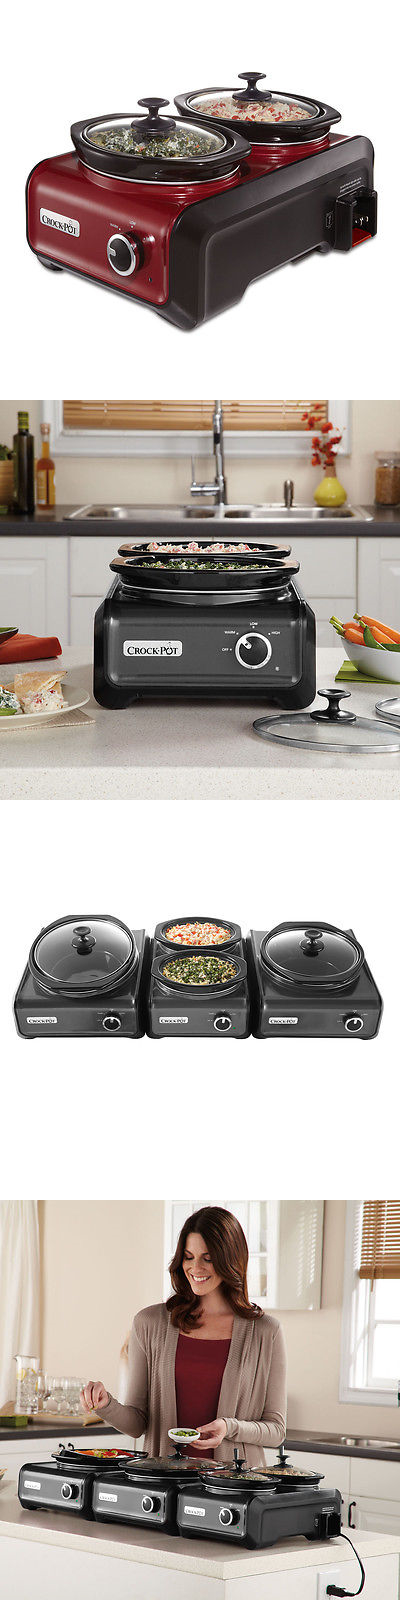 Chafing Dishes And Warming Trays 27552: Crock Pot Hook Up® Connectable  Entertaining System